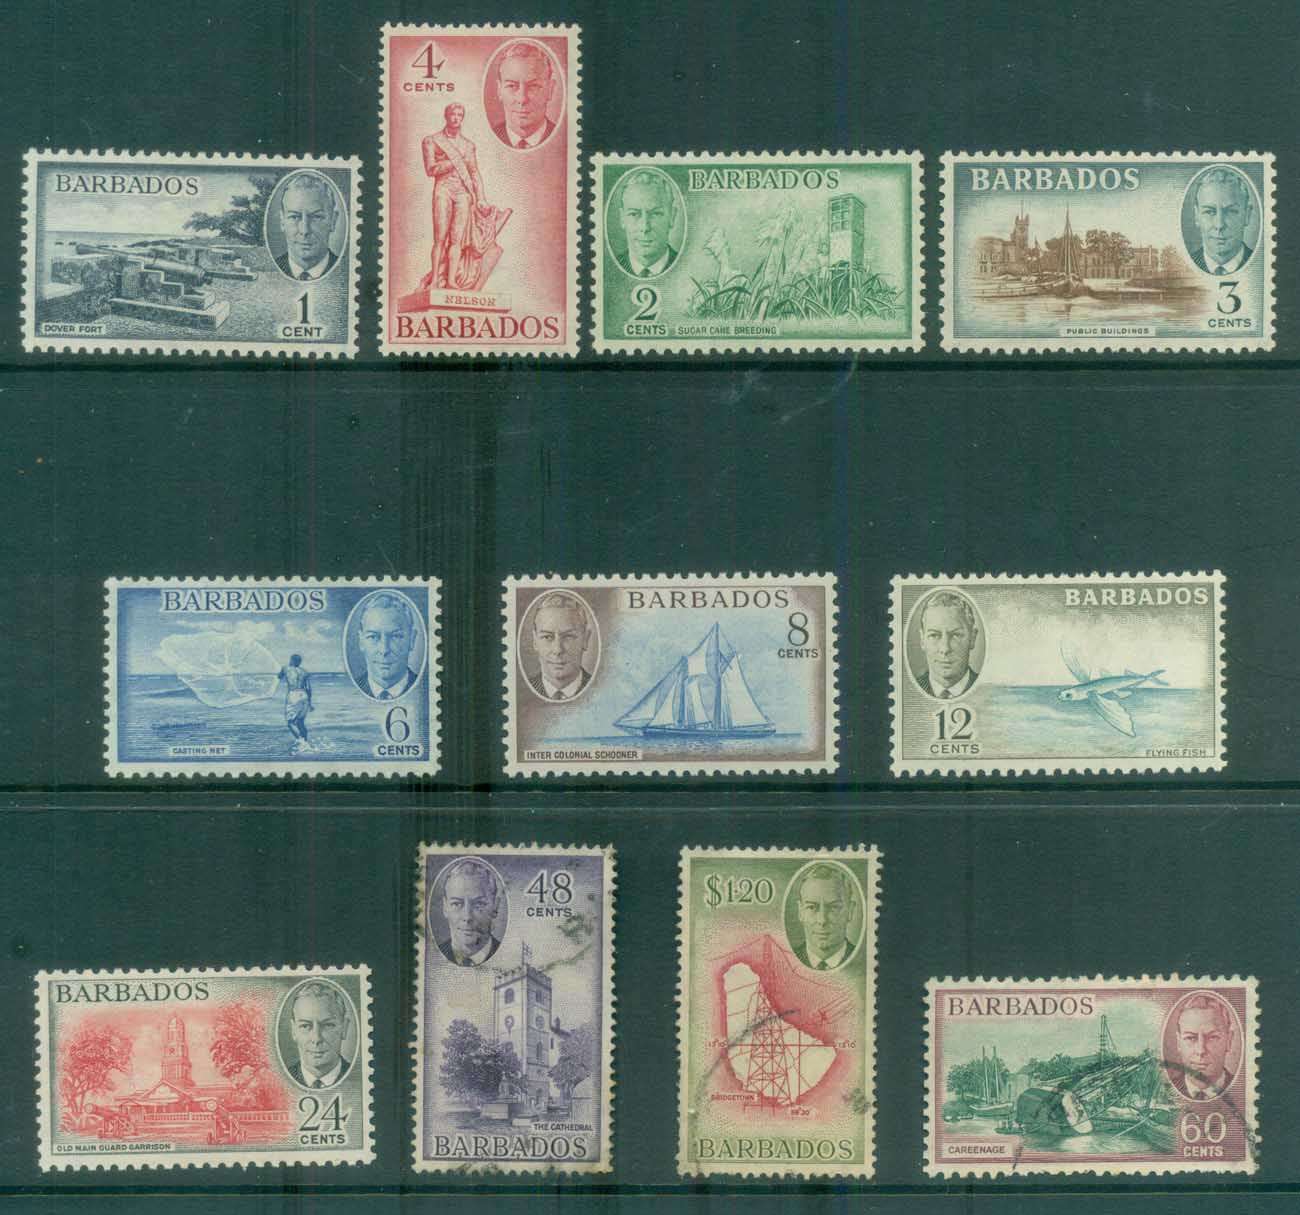 Barbados 1950 KGVI Pictorials Asst to $1.20 MLH/FU lot80771